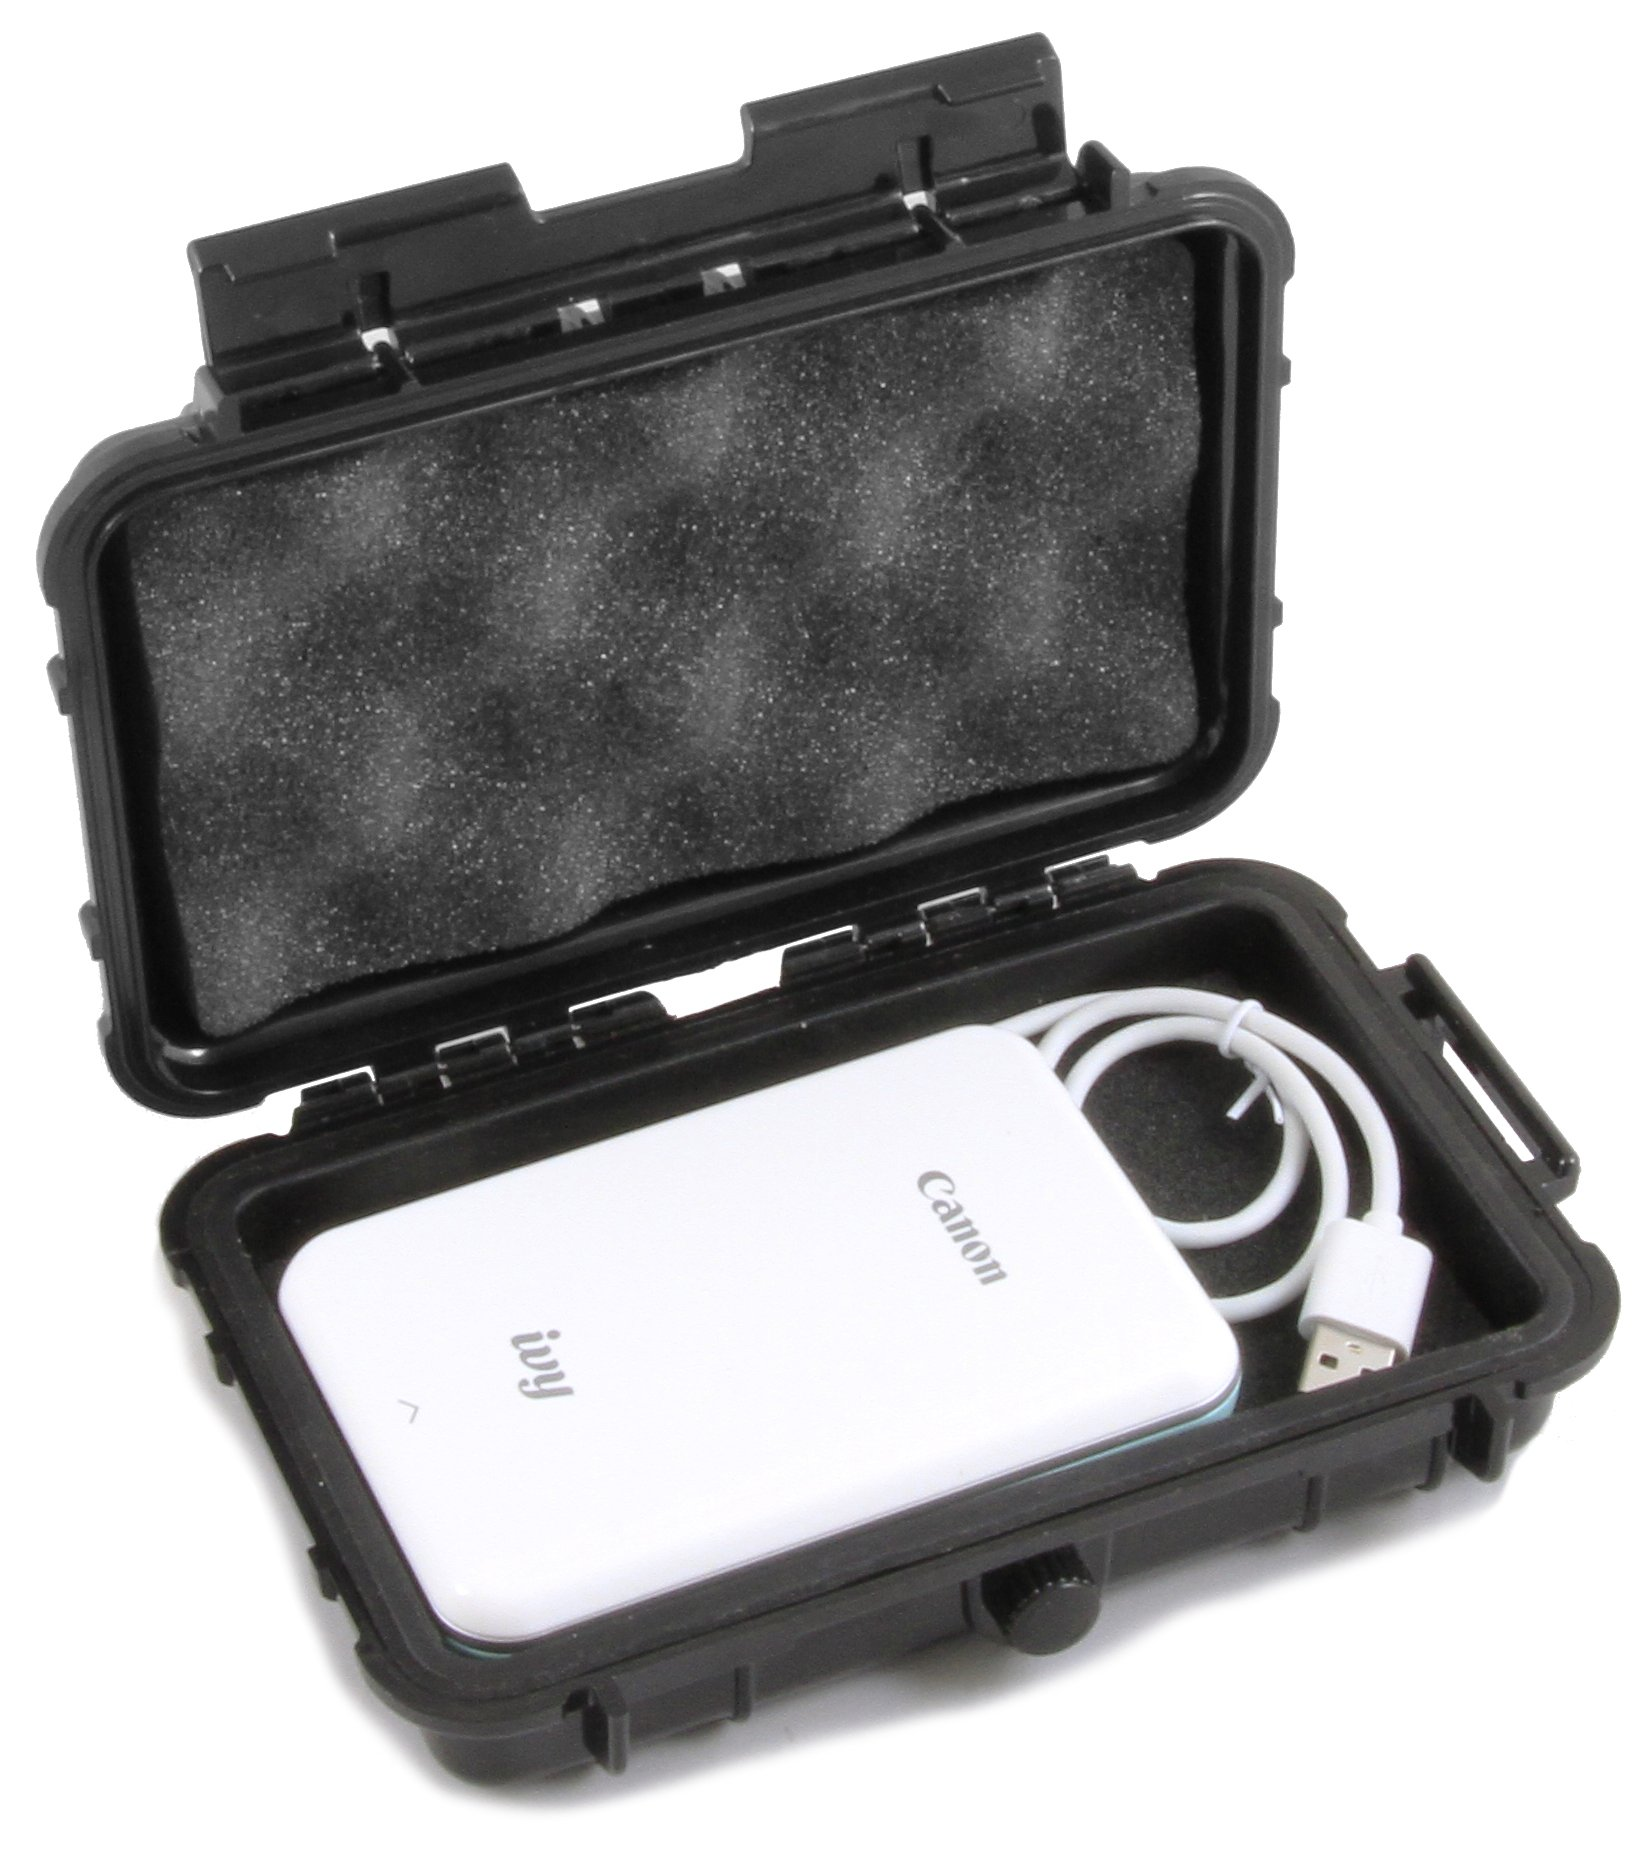 CASEMATIX Waterproof Mini Photo Printer Case Fits Canon Ivy Printer and Charge Cable